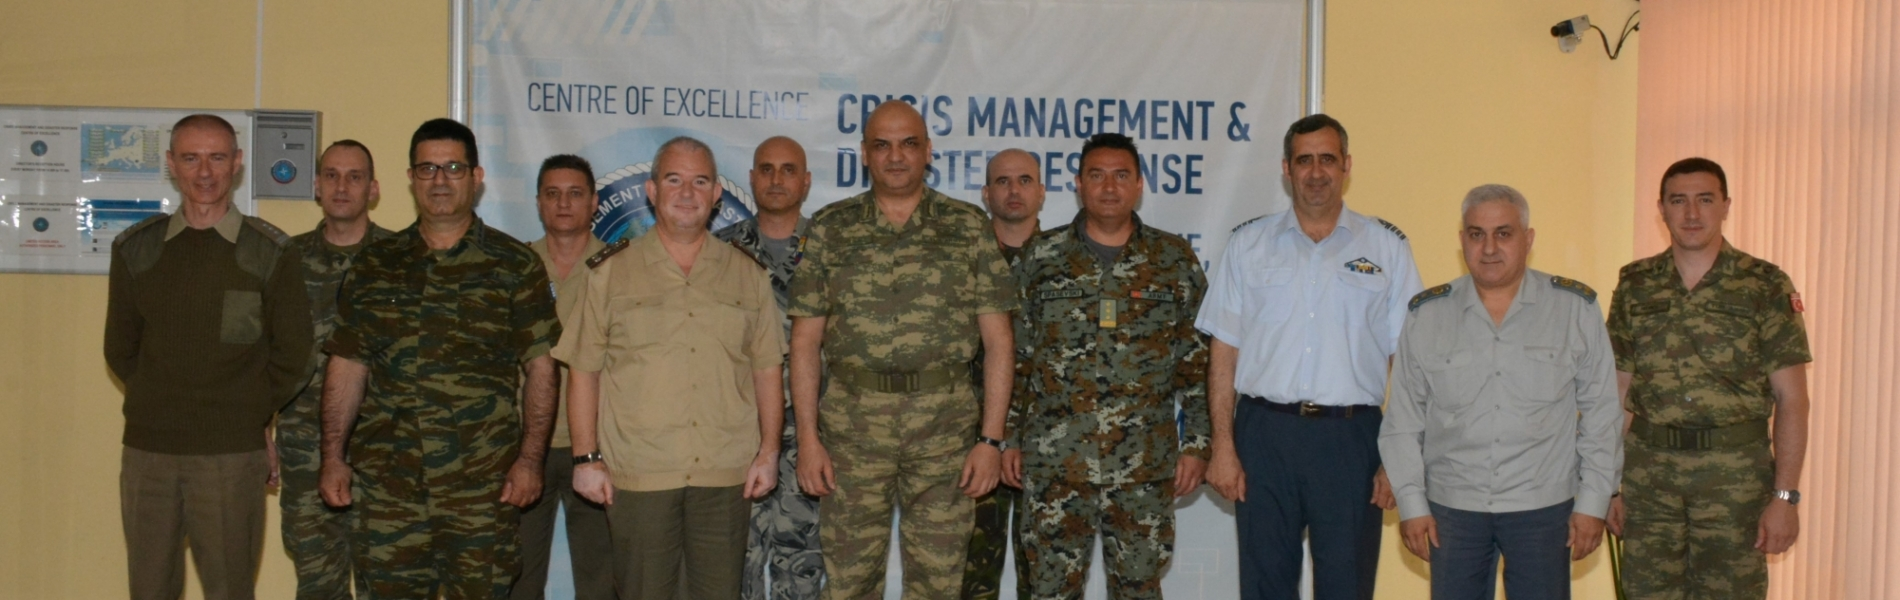 CMDR COE hosted a delegation of SEEBRIG led by Brigadier General Numan Yediyildiz, TUR-A, SEEBRIG Commander,  May 16 2016